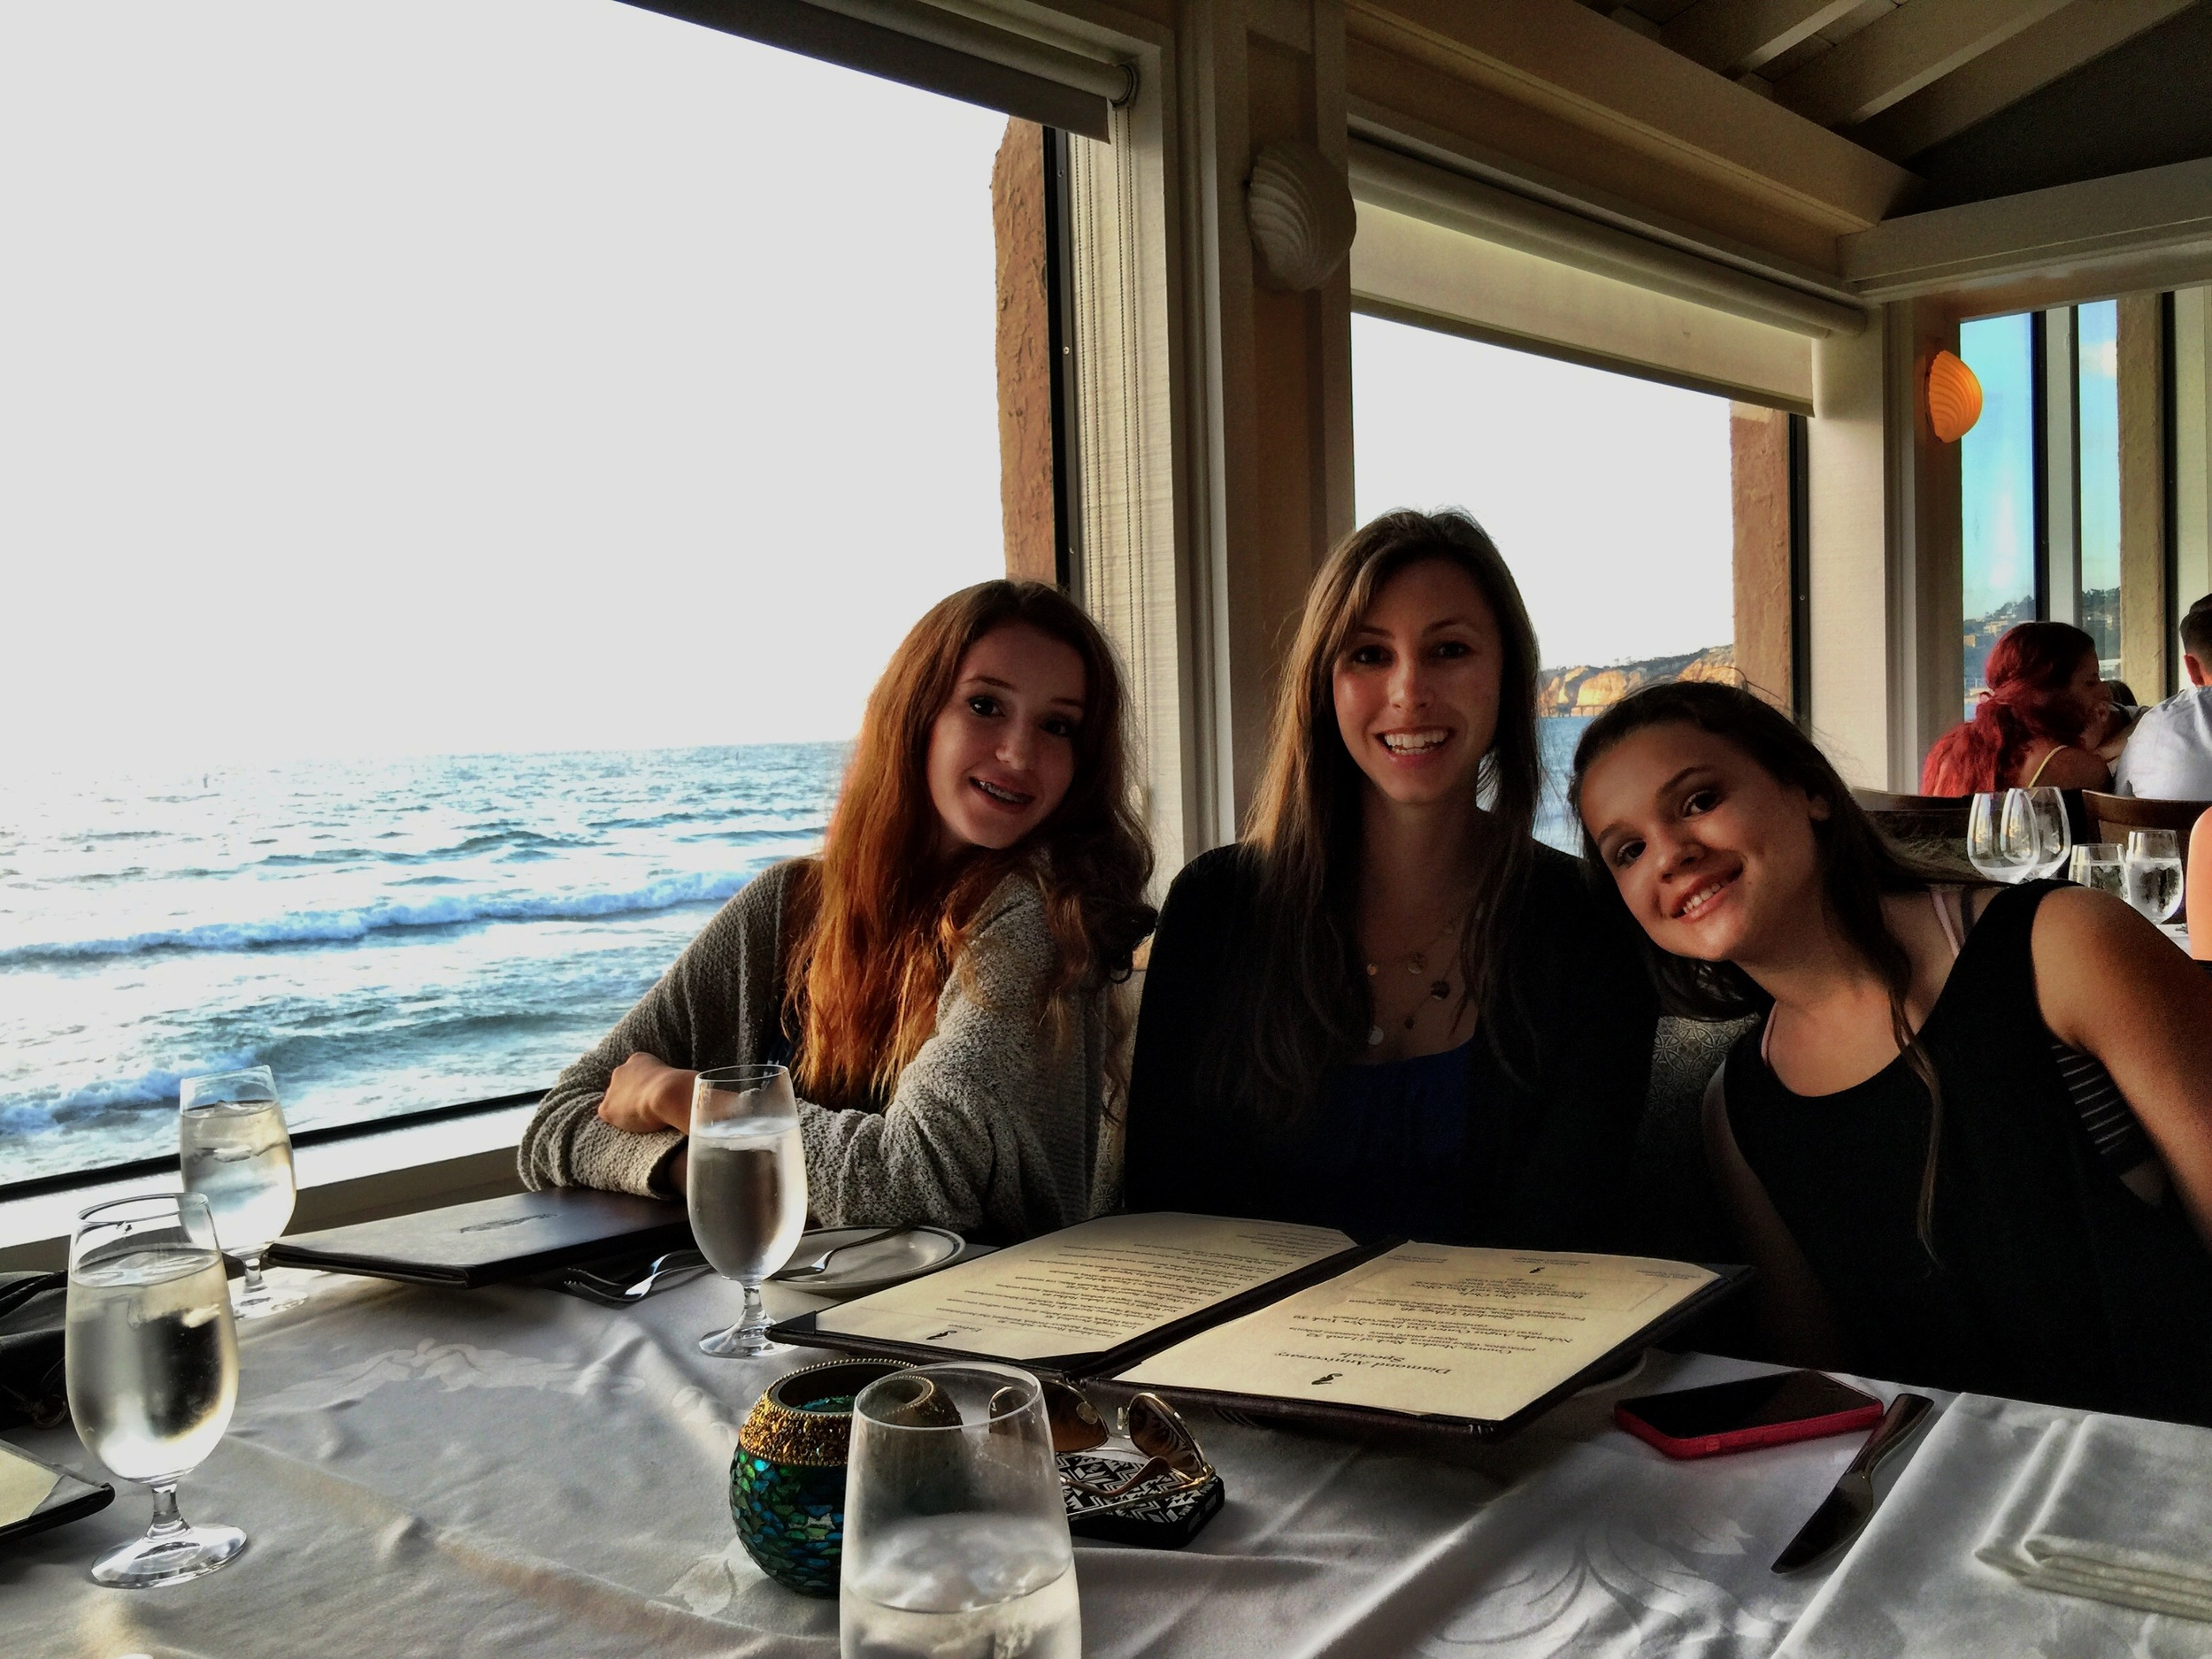 The Candelaria Girls at the Marine Room